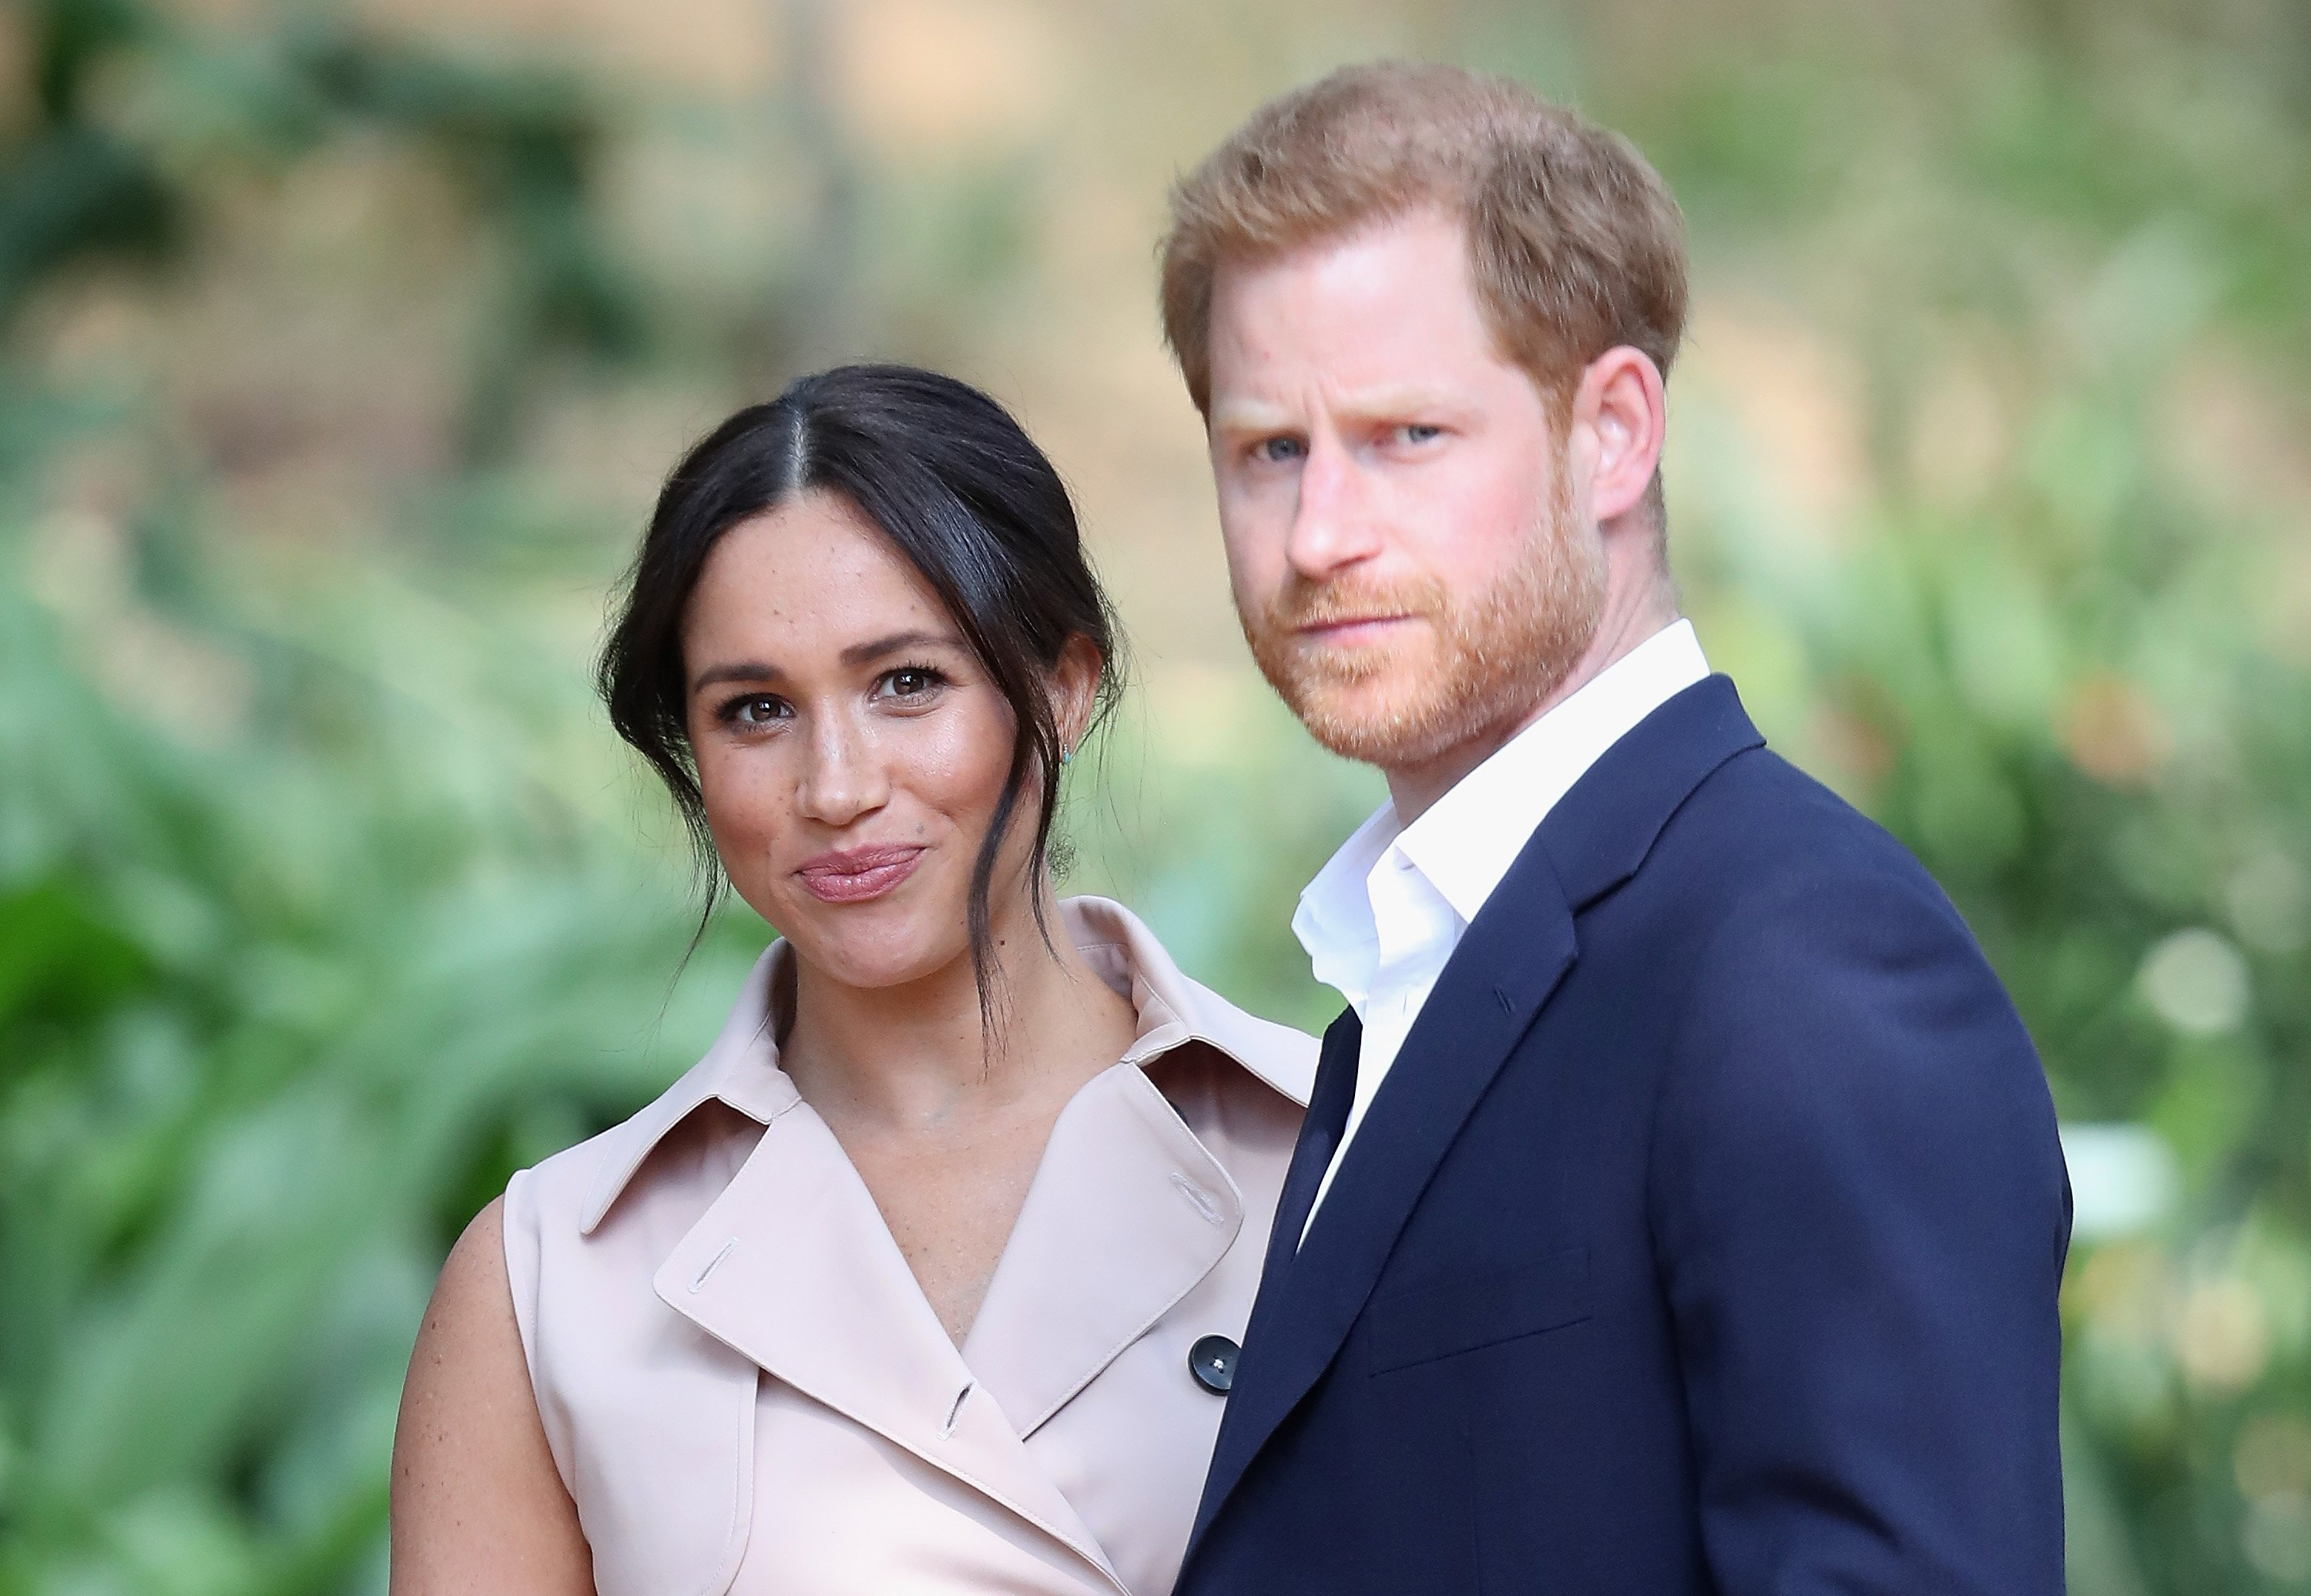 Le Prince Harry et Meghan Markle lors d'une réception sur les industries créatives et les affaires le 2 octobre 2019 en Afrique du Sud | Photo : Getty Images